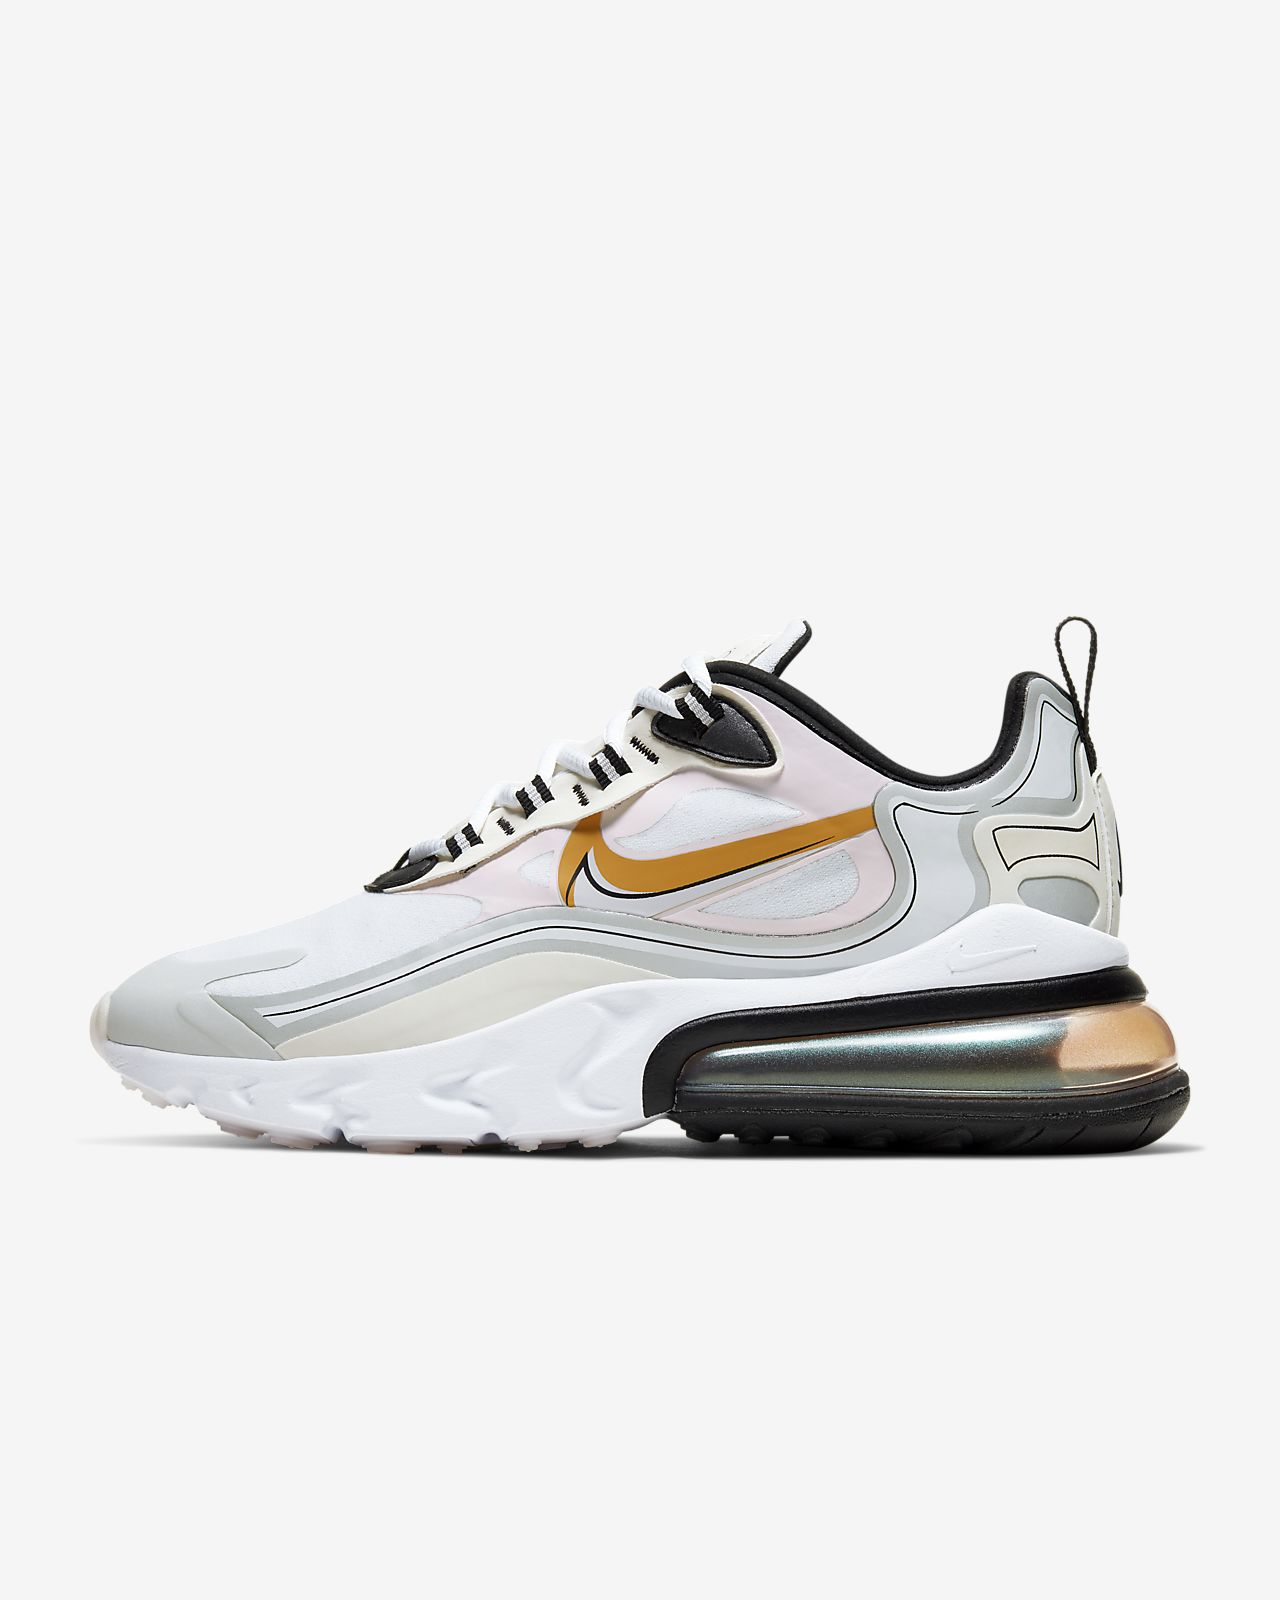 Nike Air Max 270 White Orange Black Sneaker